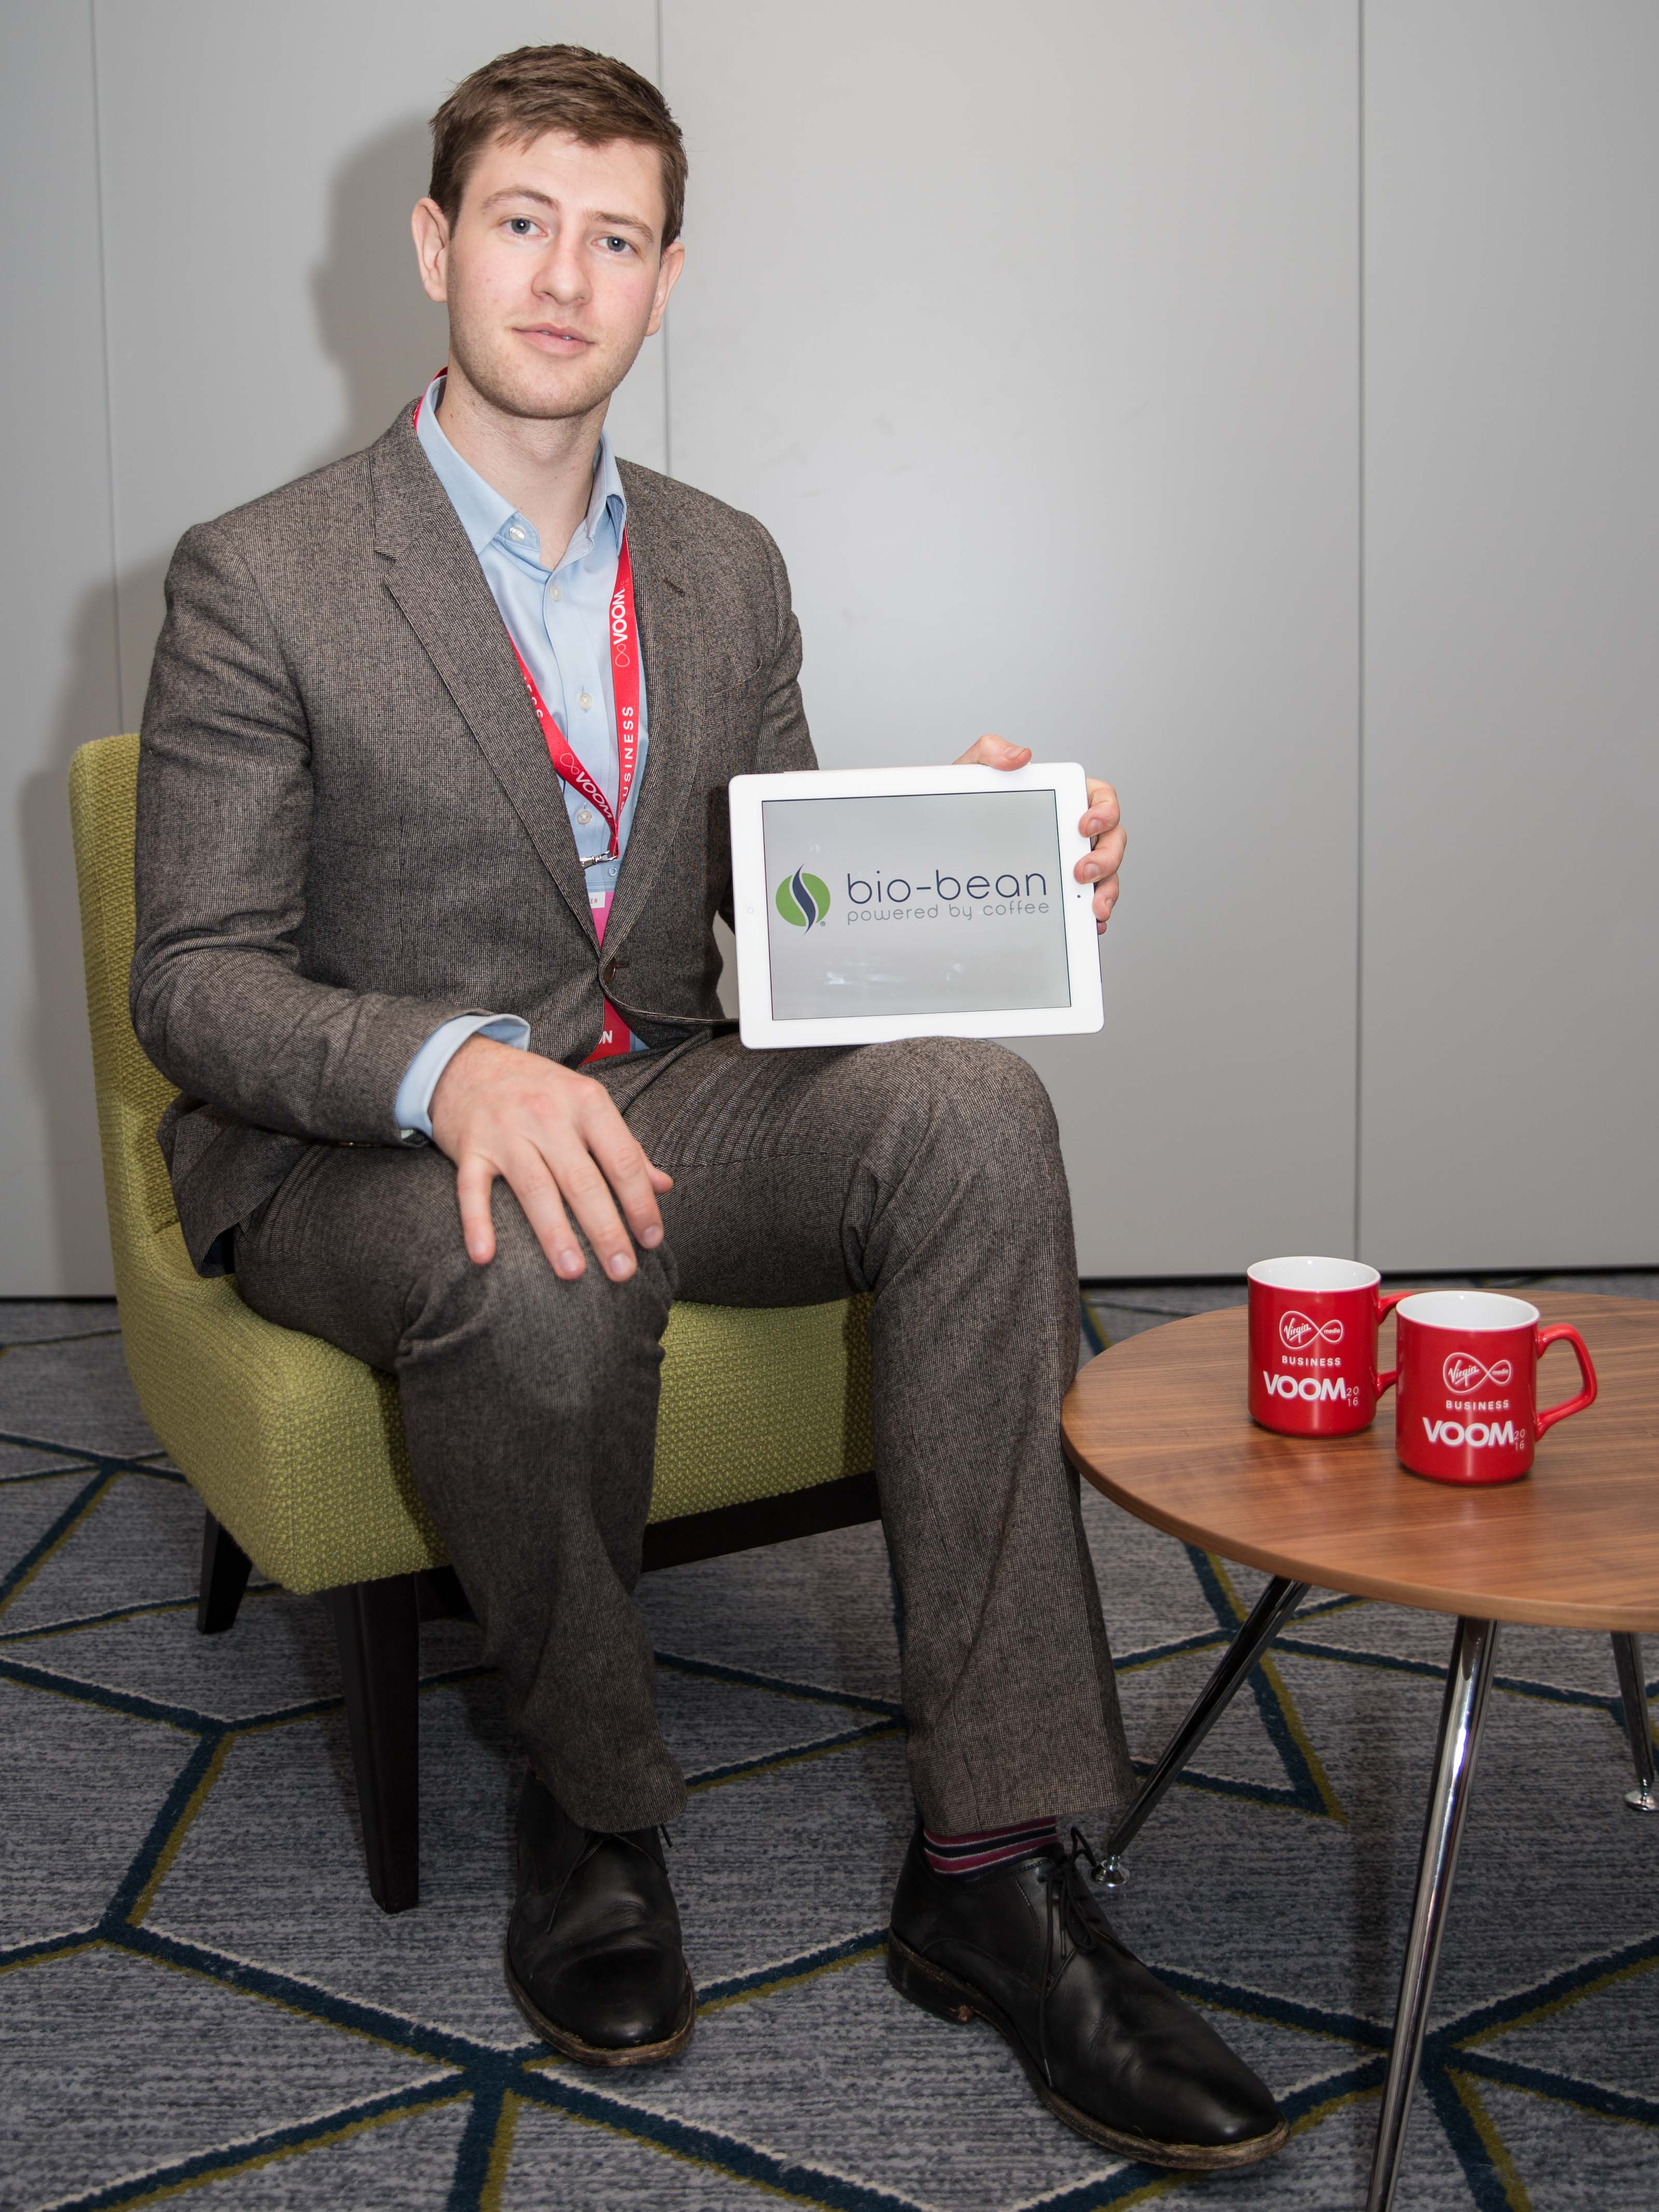 Coffee doesn't just energise the sleep deprived – waste grounds are fuelling buildings